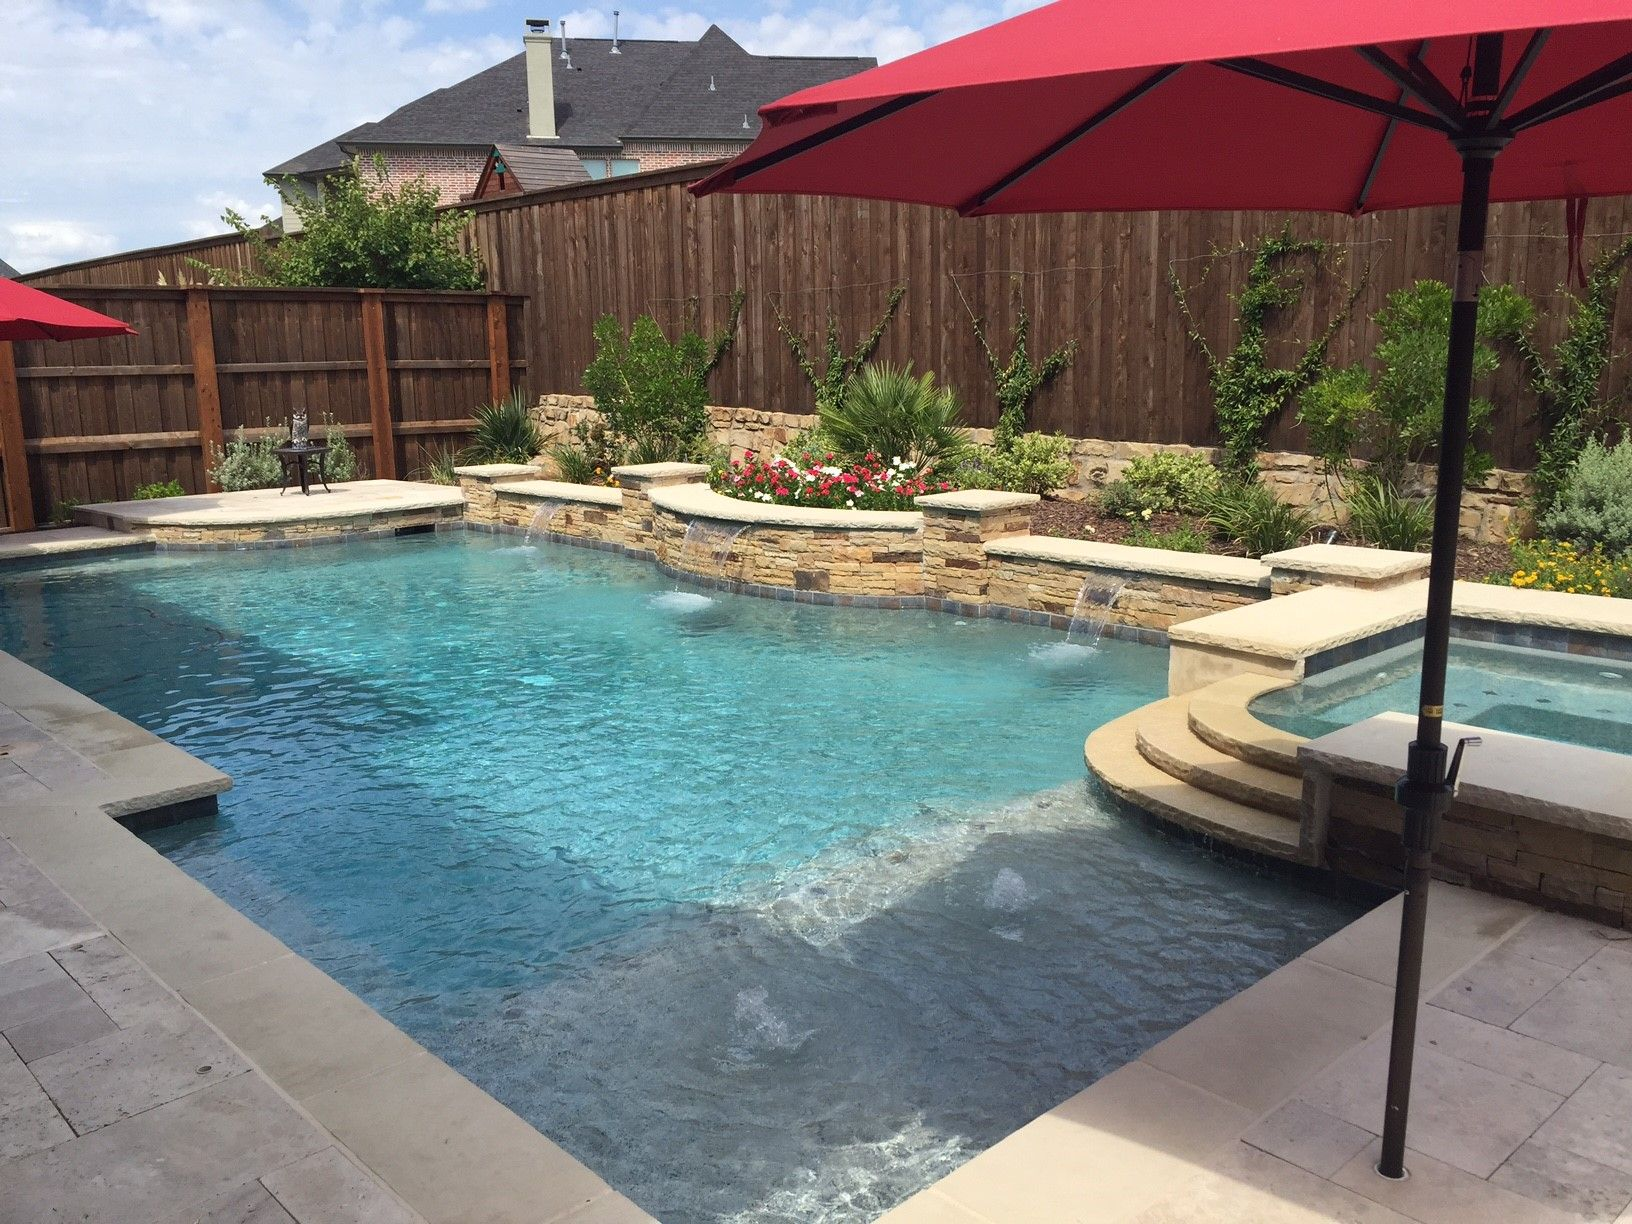 Dallas formal pools rockwall custom pool formal pool for Swimming pool spa designs